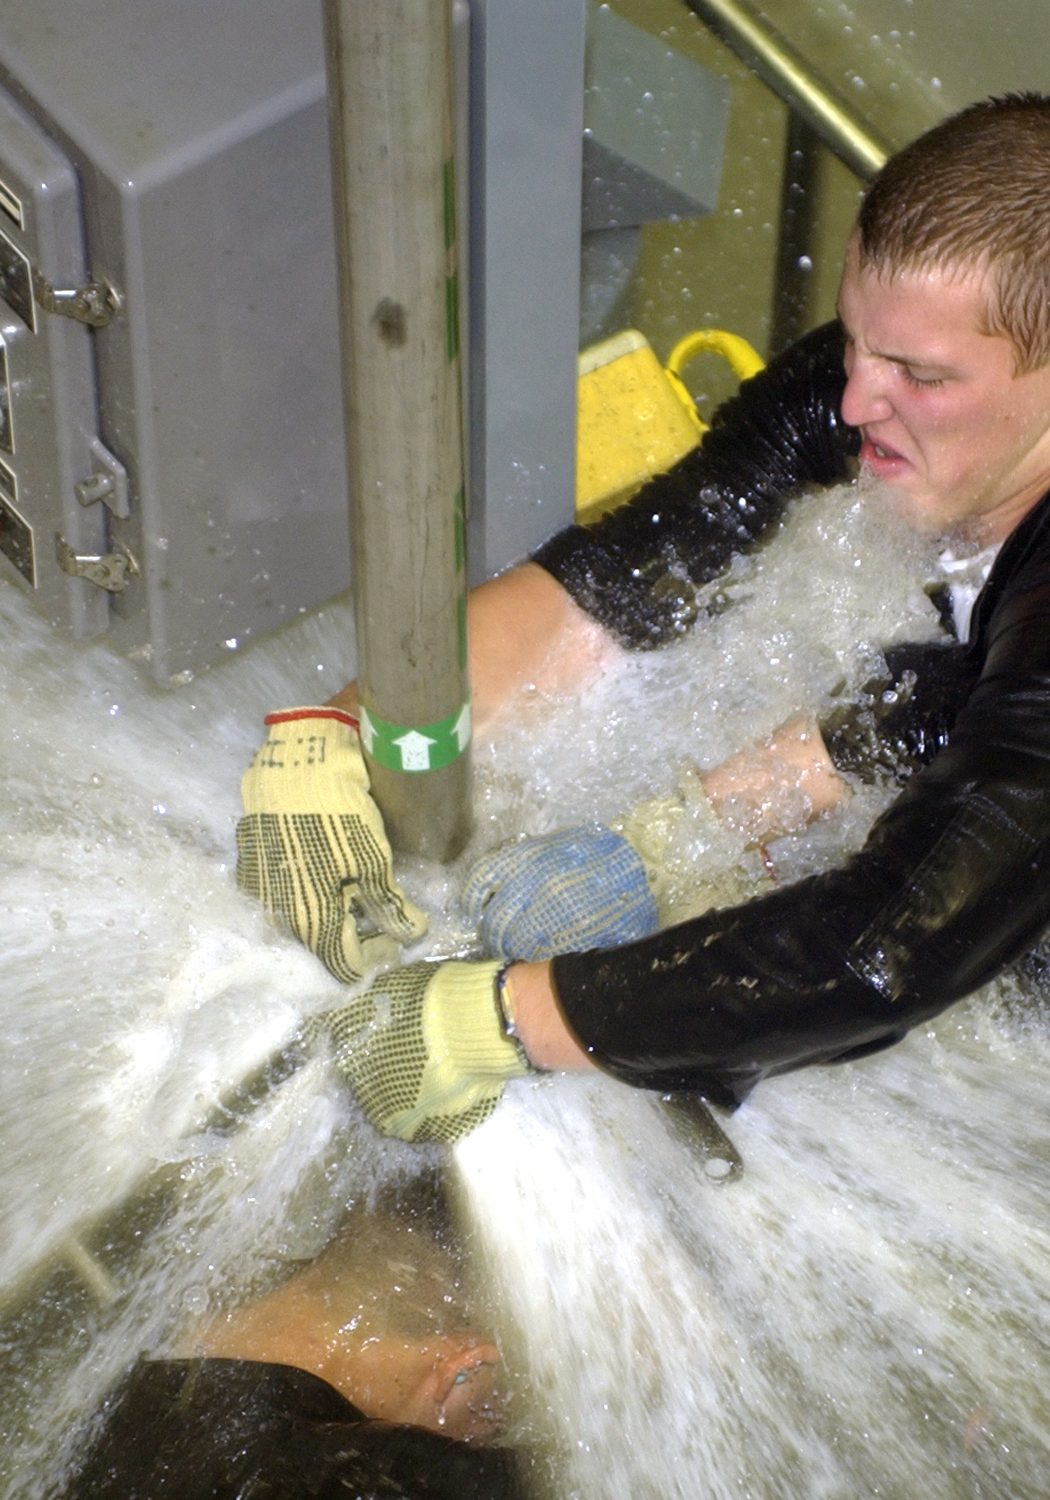 040308-N-0000P-002 Norfolk, Va. (Mar. 8, 2004) Ð Sailors practice repairing leaks in the Òwet trainerÓ on board the Submarine Training Facility (SUBTRAFAC) in Norfolk, Va. The trainer is designed to test the teamwork and damage control capabilities for crews preparing to deploy aboard submarines. Sailors are exposed to leaks from pressurized service pipes within an enclosed space, in effort to provide a controlled yet realistic training environment. U.S. Navy photo. (RELEASED)